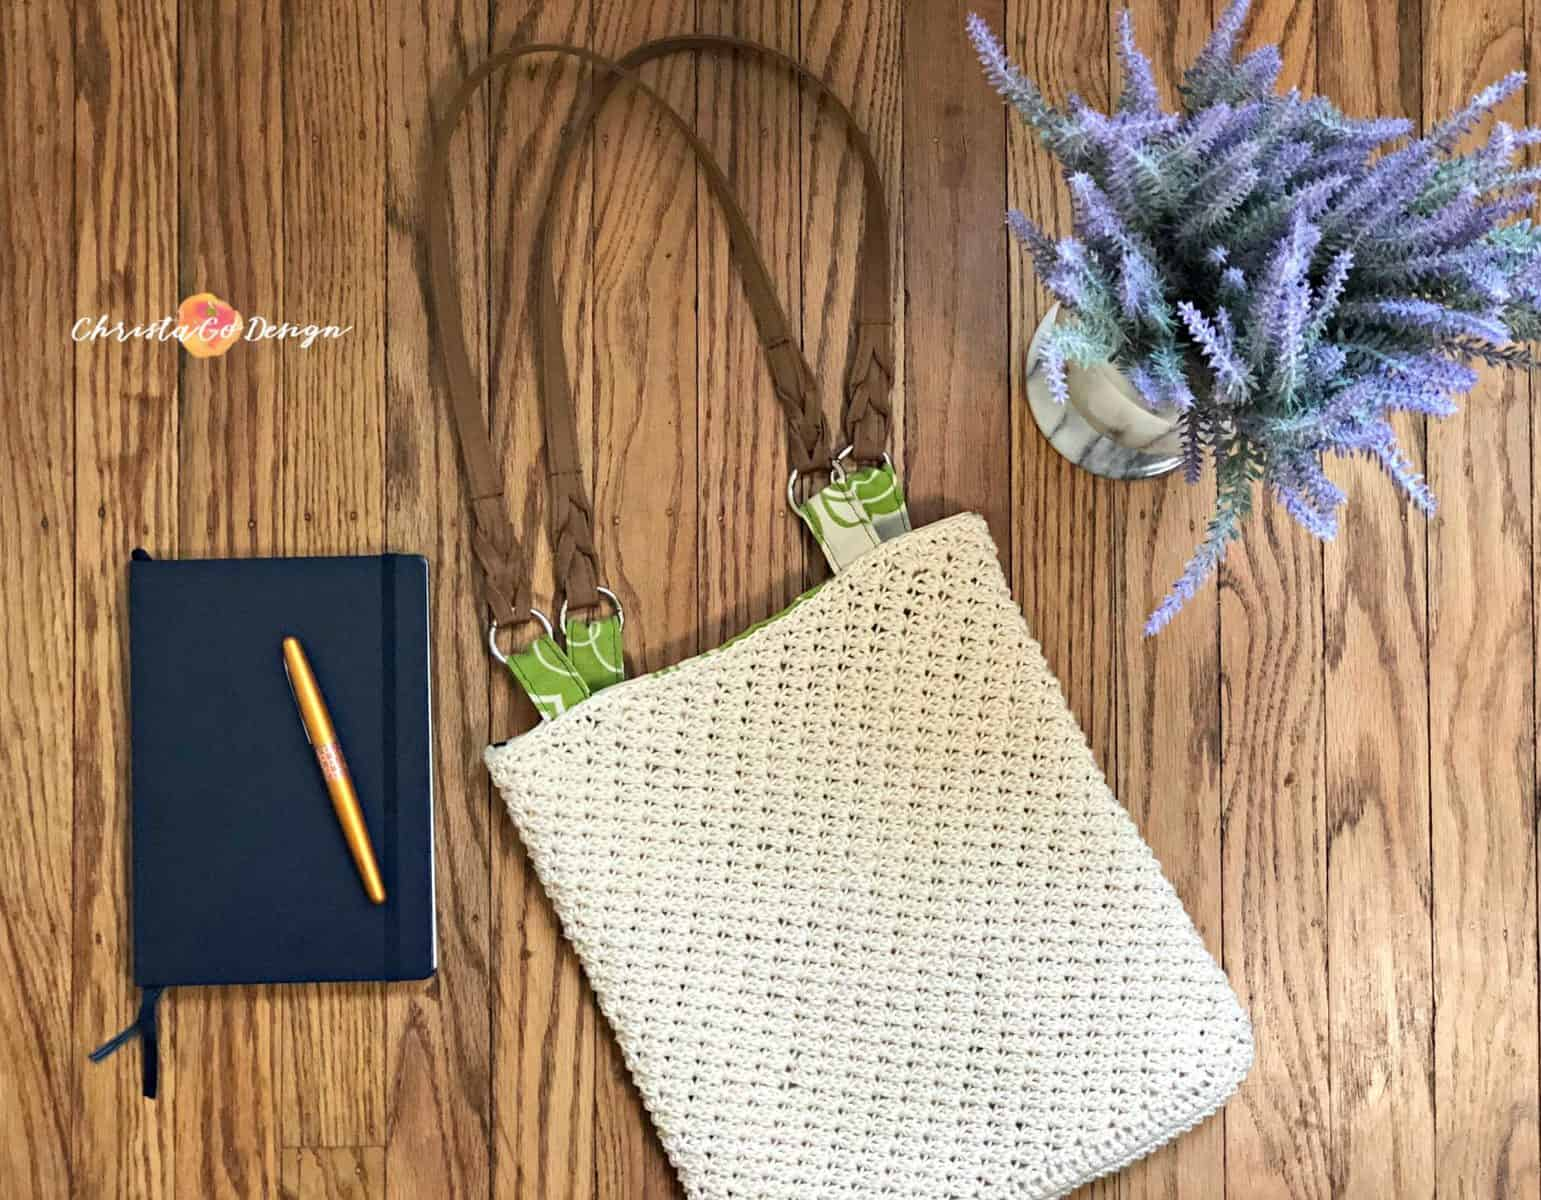 How to Line a Crochet Bag Photo Tutorial